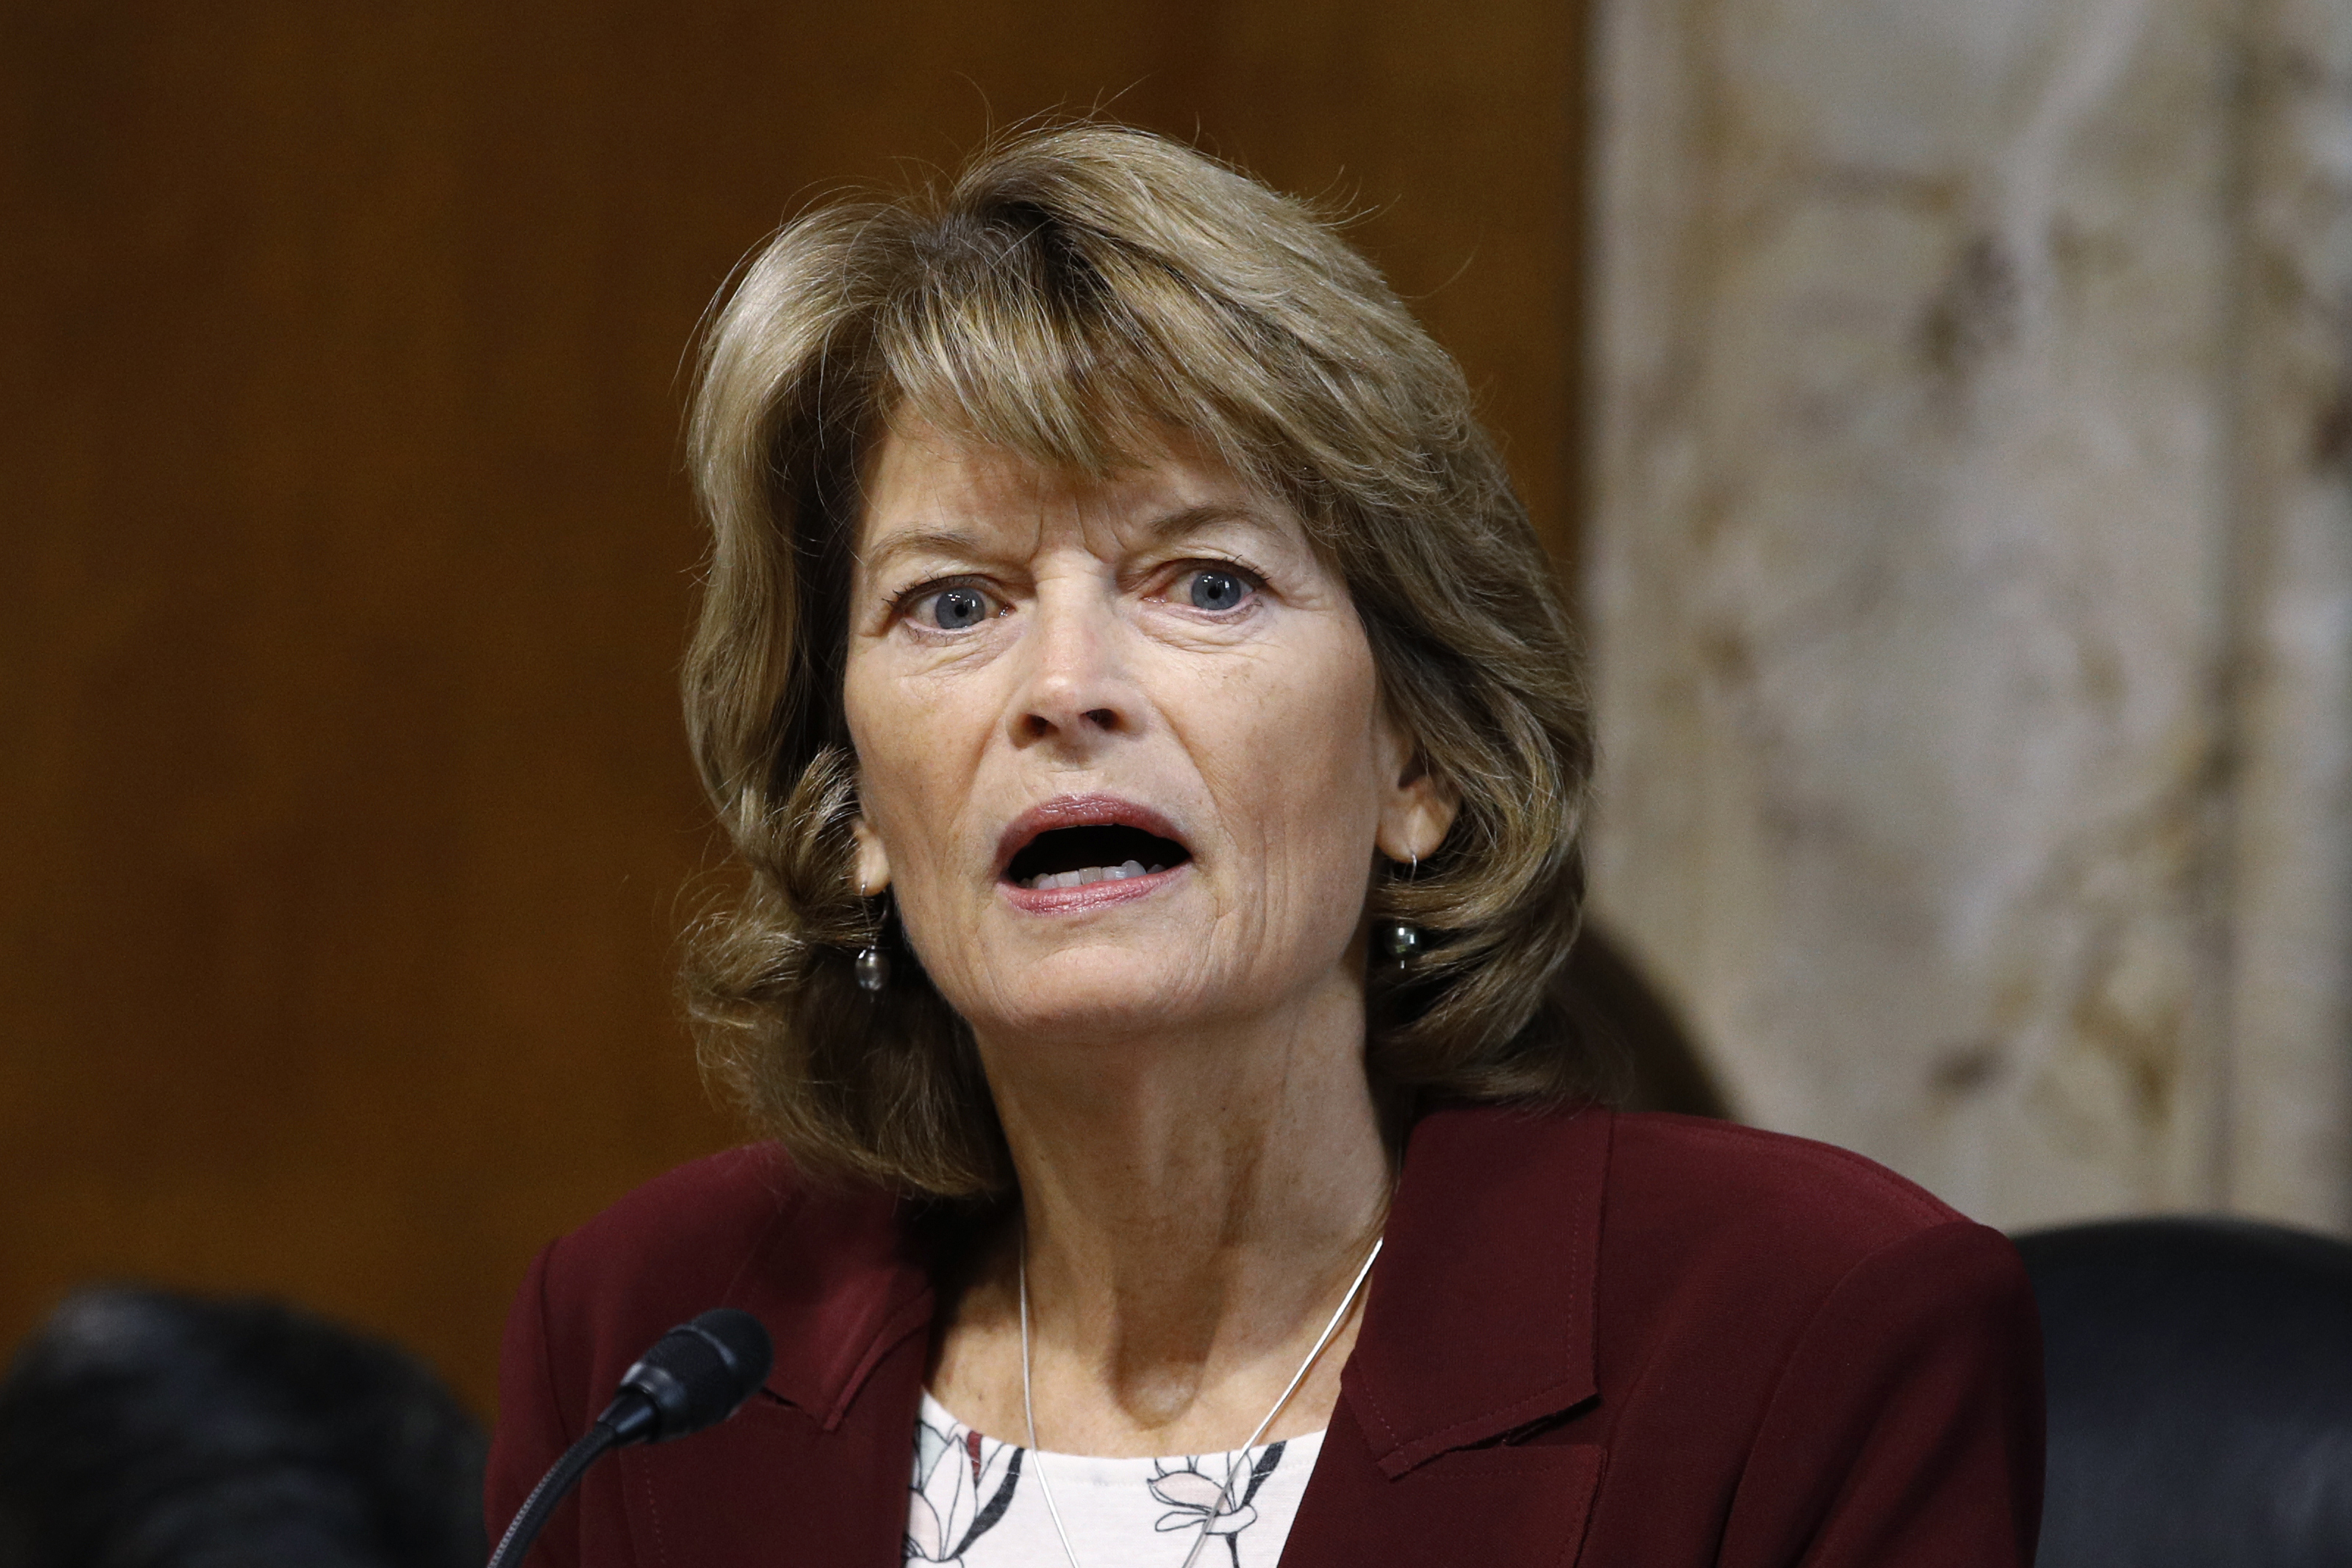 GOP Sen. Murkowski Says She Needs to Hear Impeachment Case Before Deciding Whether Further Witnesses Are Needed